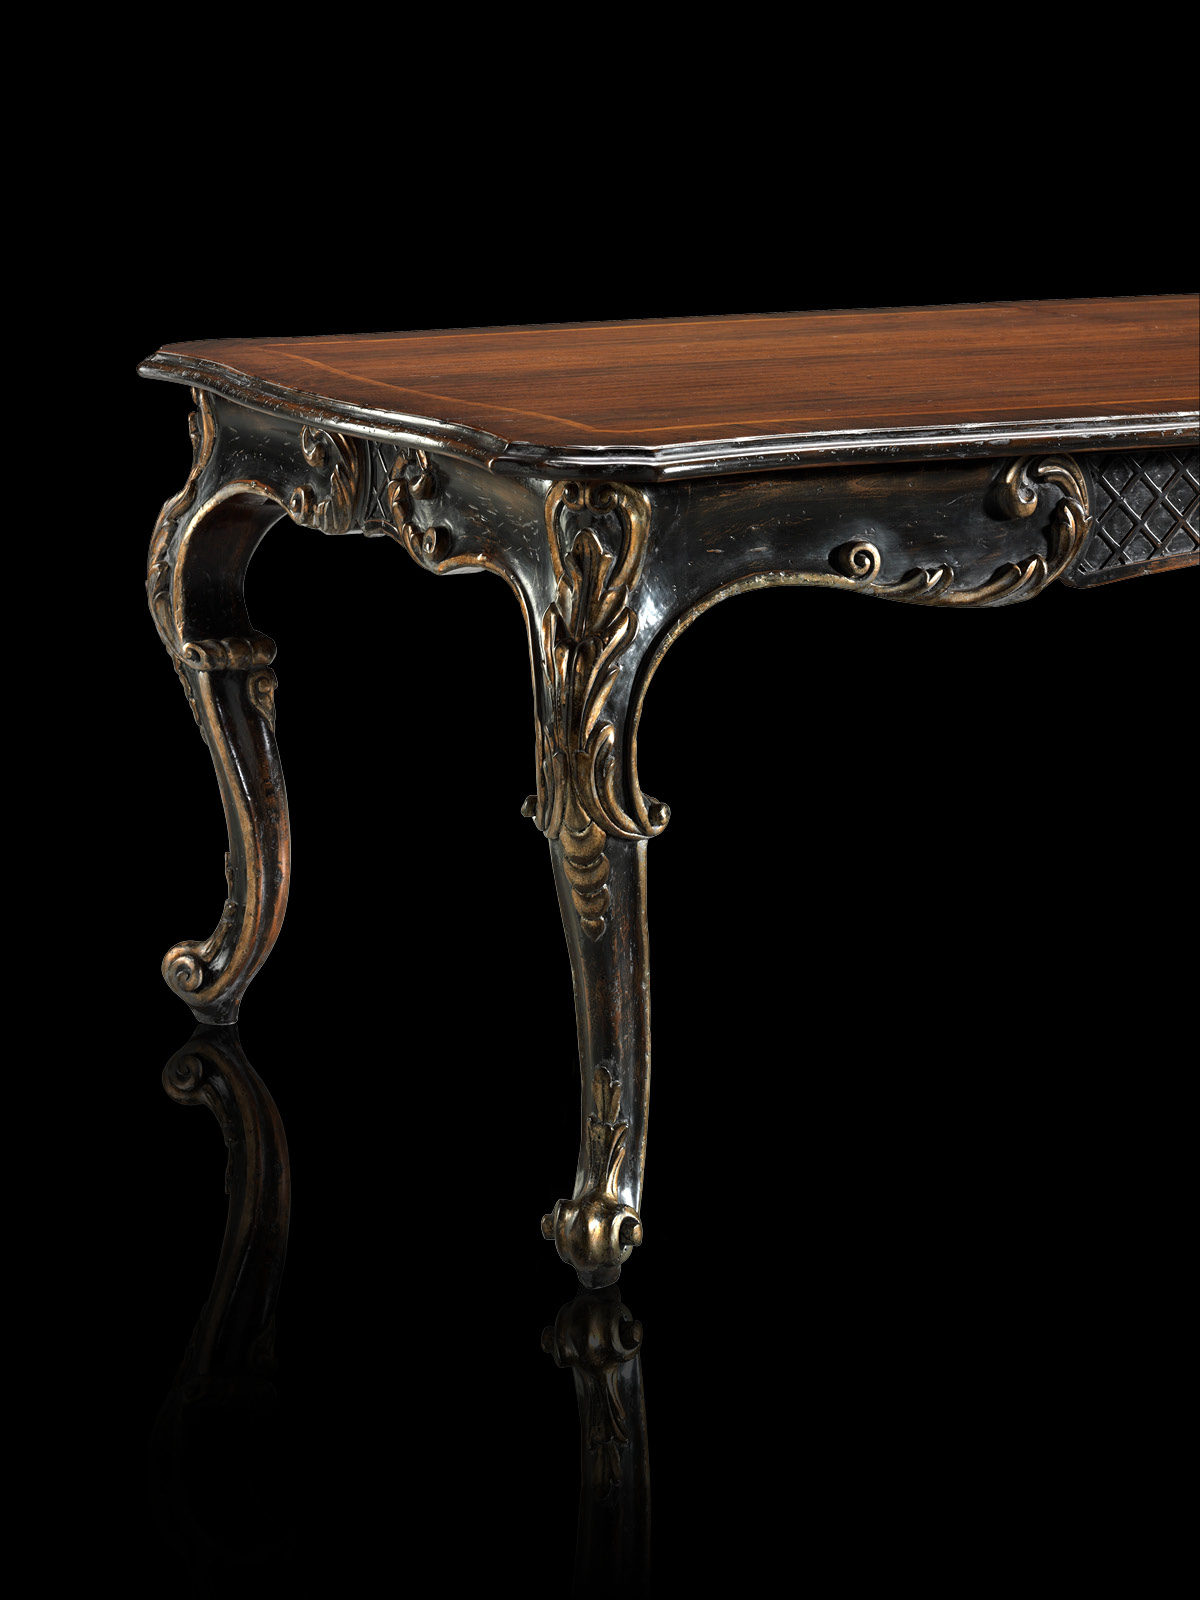 Table with leaves Mod. 813/N – 248 (308/368) x 120 h 78 cm